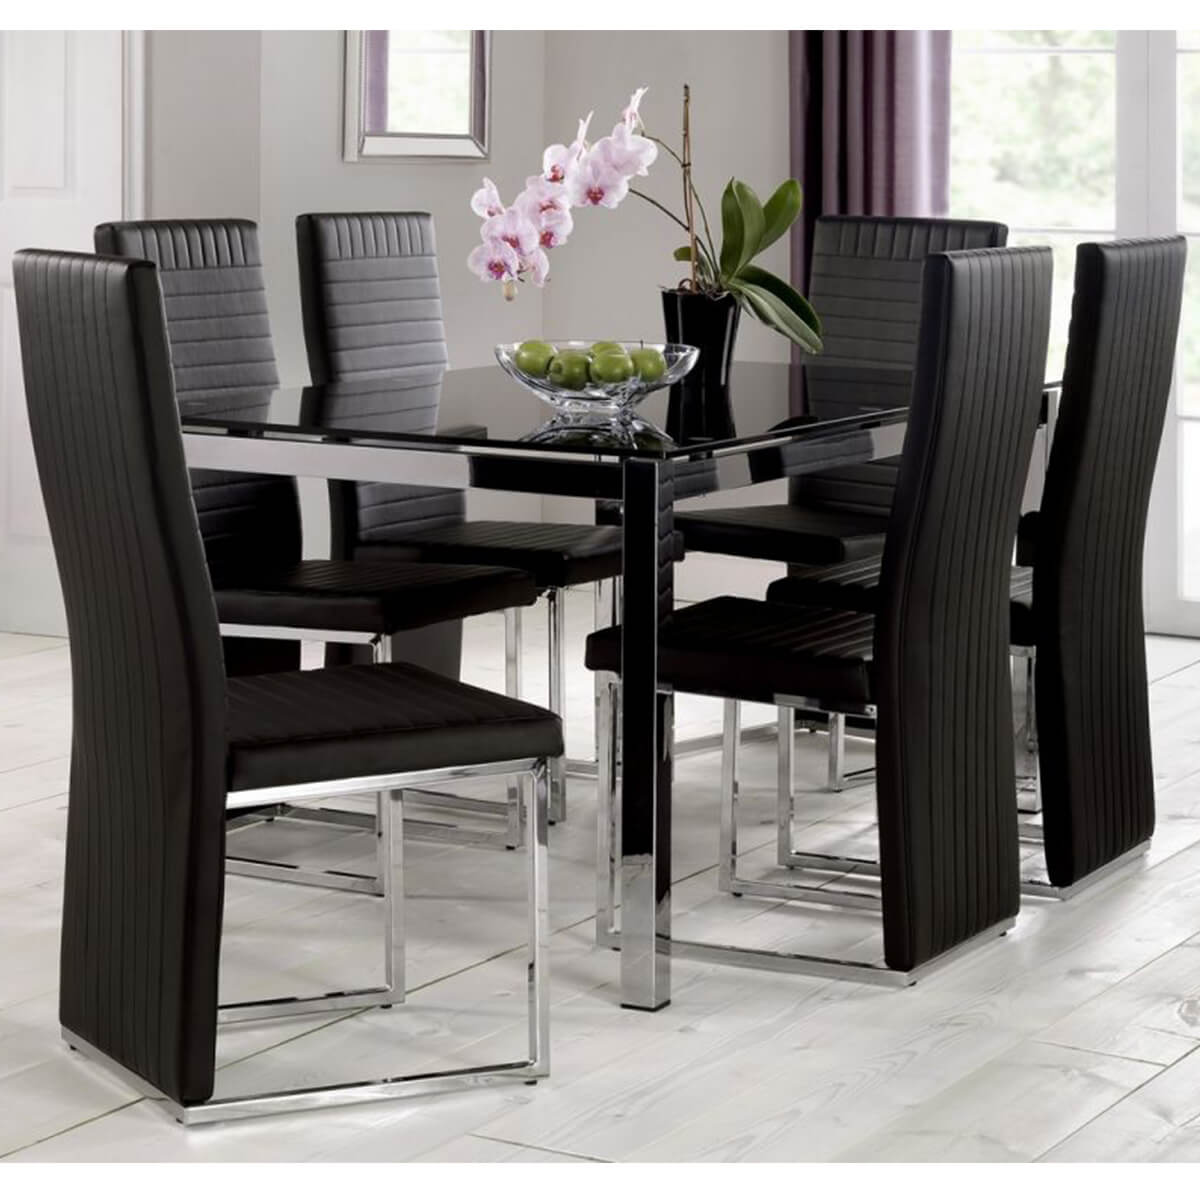 Black Dining Furniture: Tempo Black Dining Table With Black Chairs